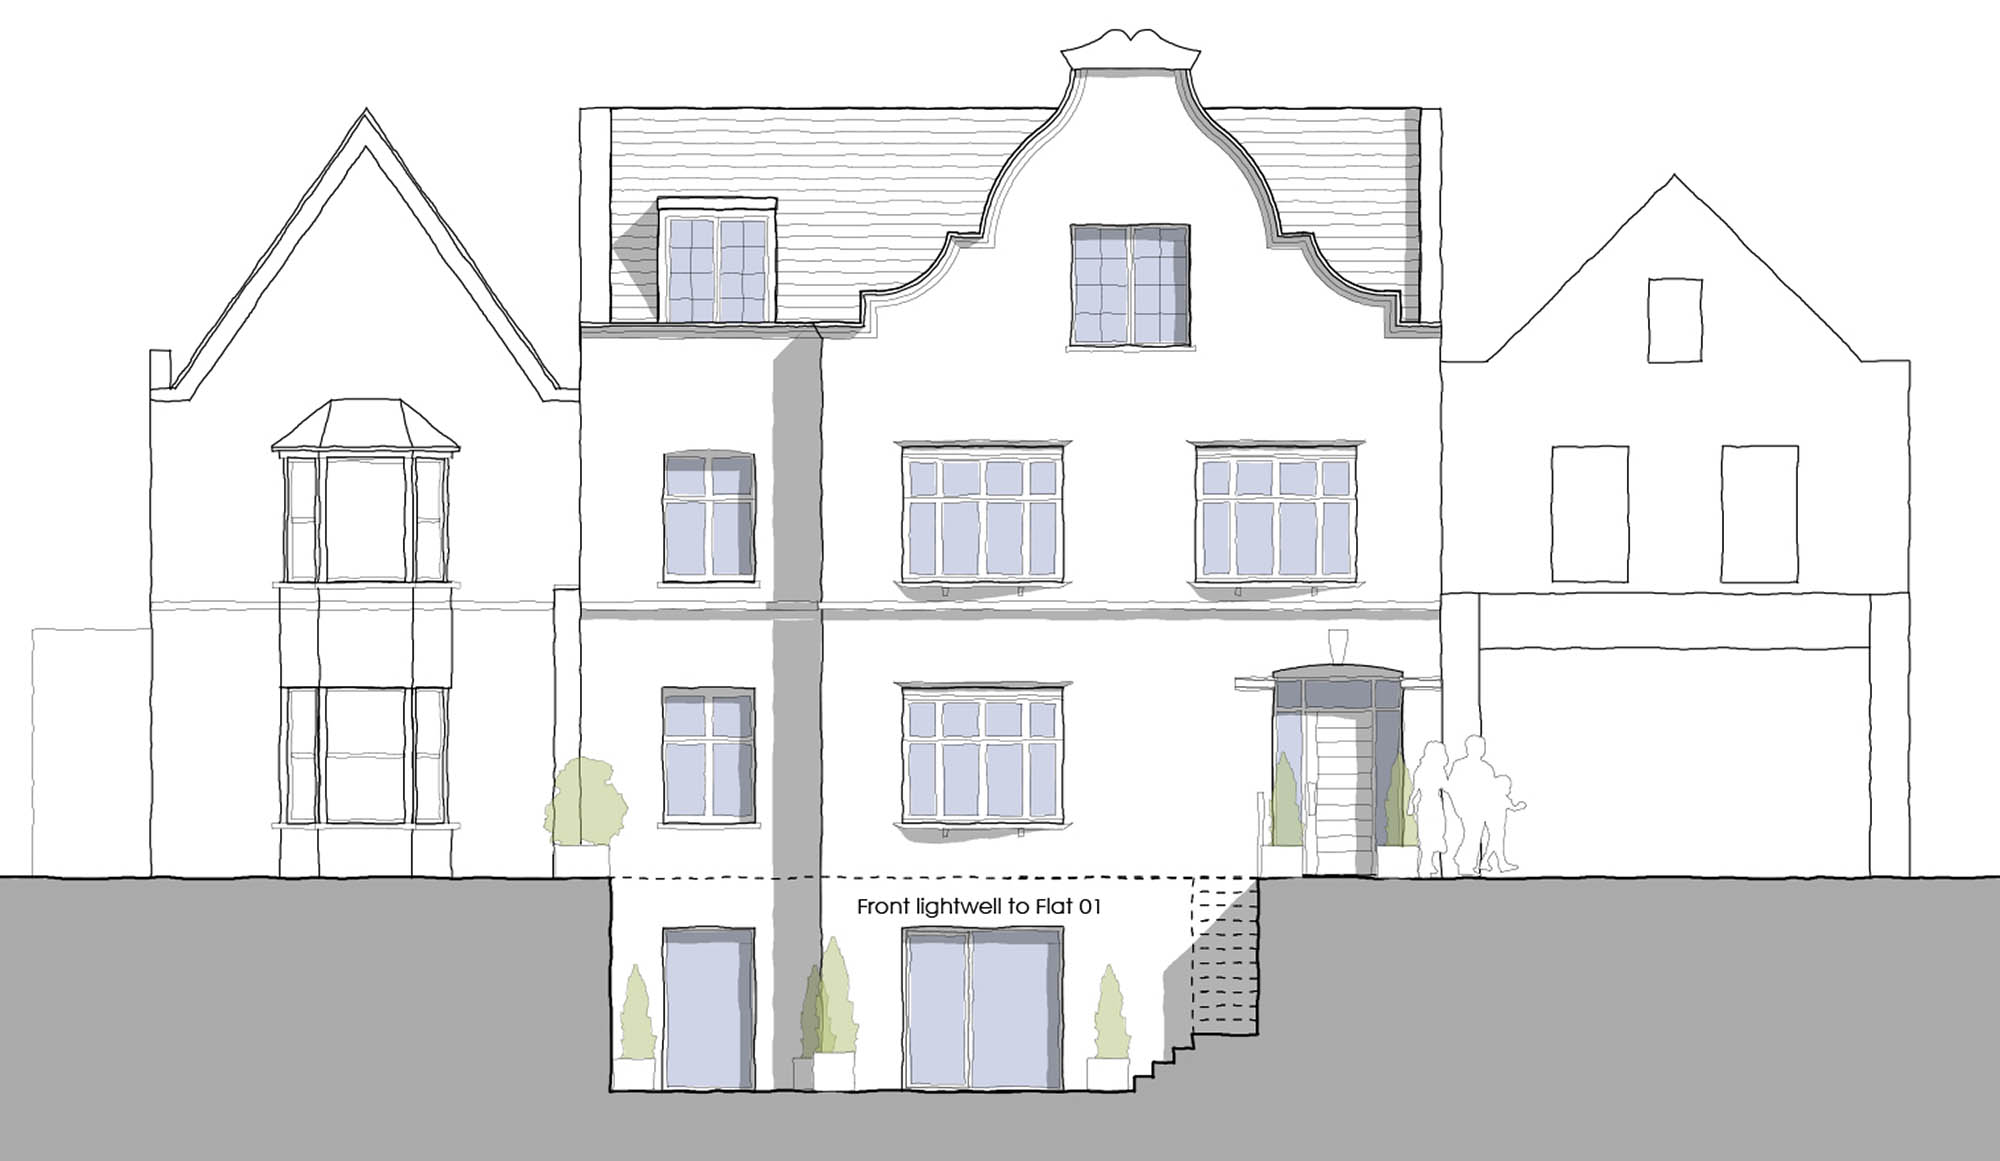 Front elevation plans for Richmond Road luxury apartments development